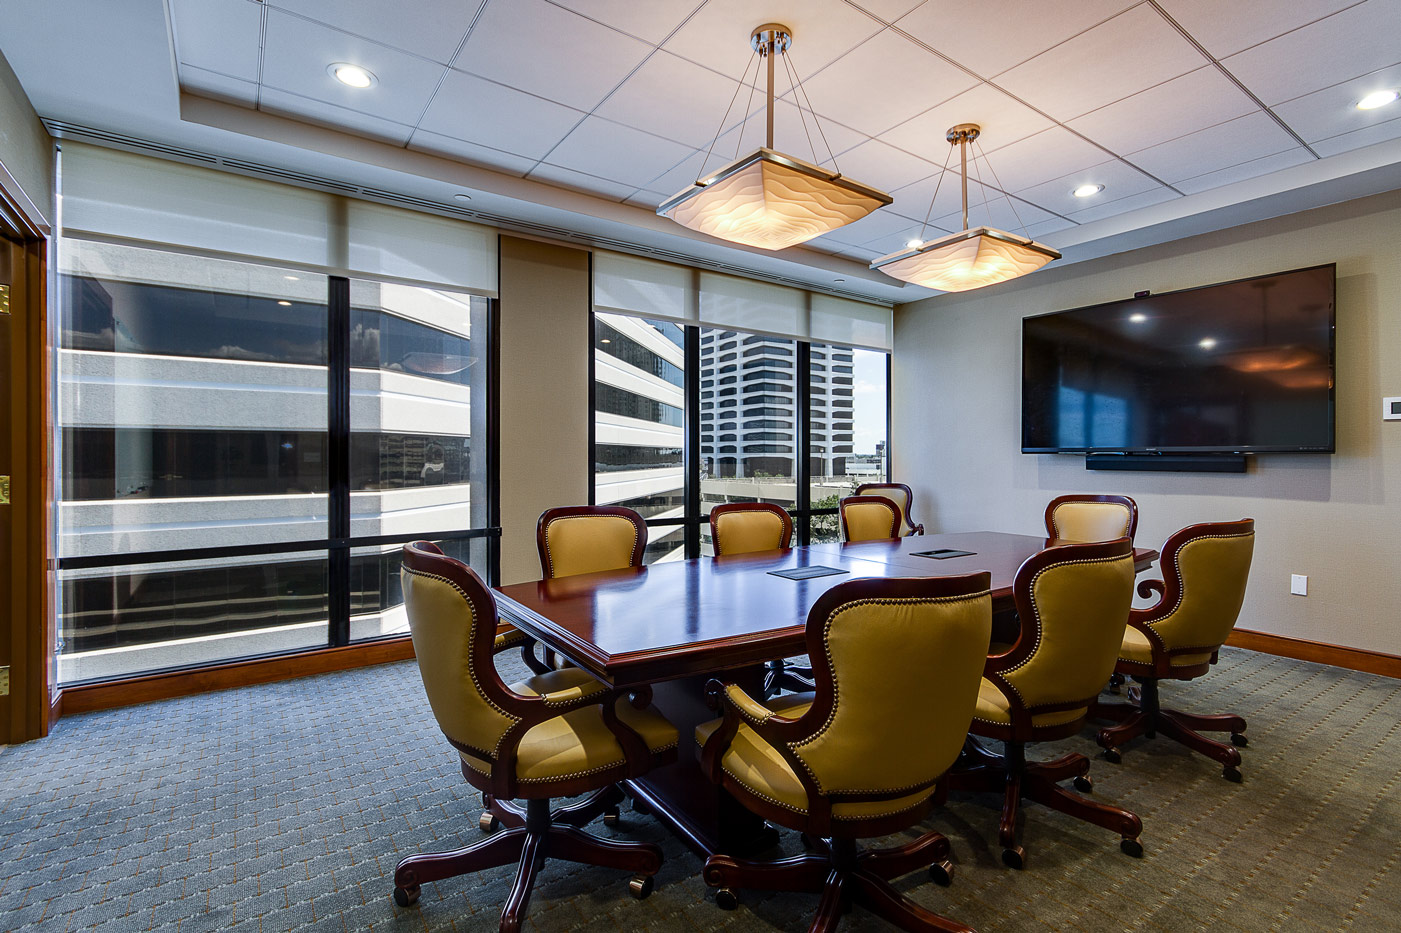 conference room with tables chairs and large screen